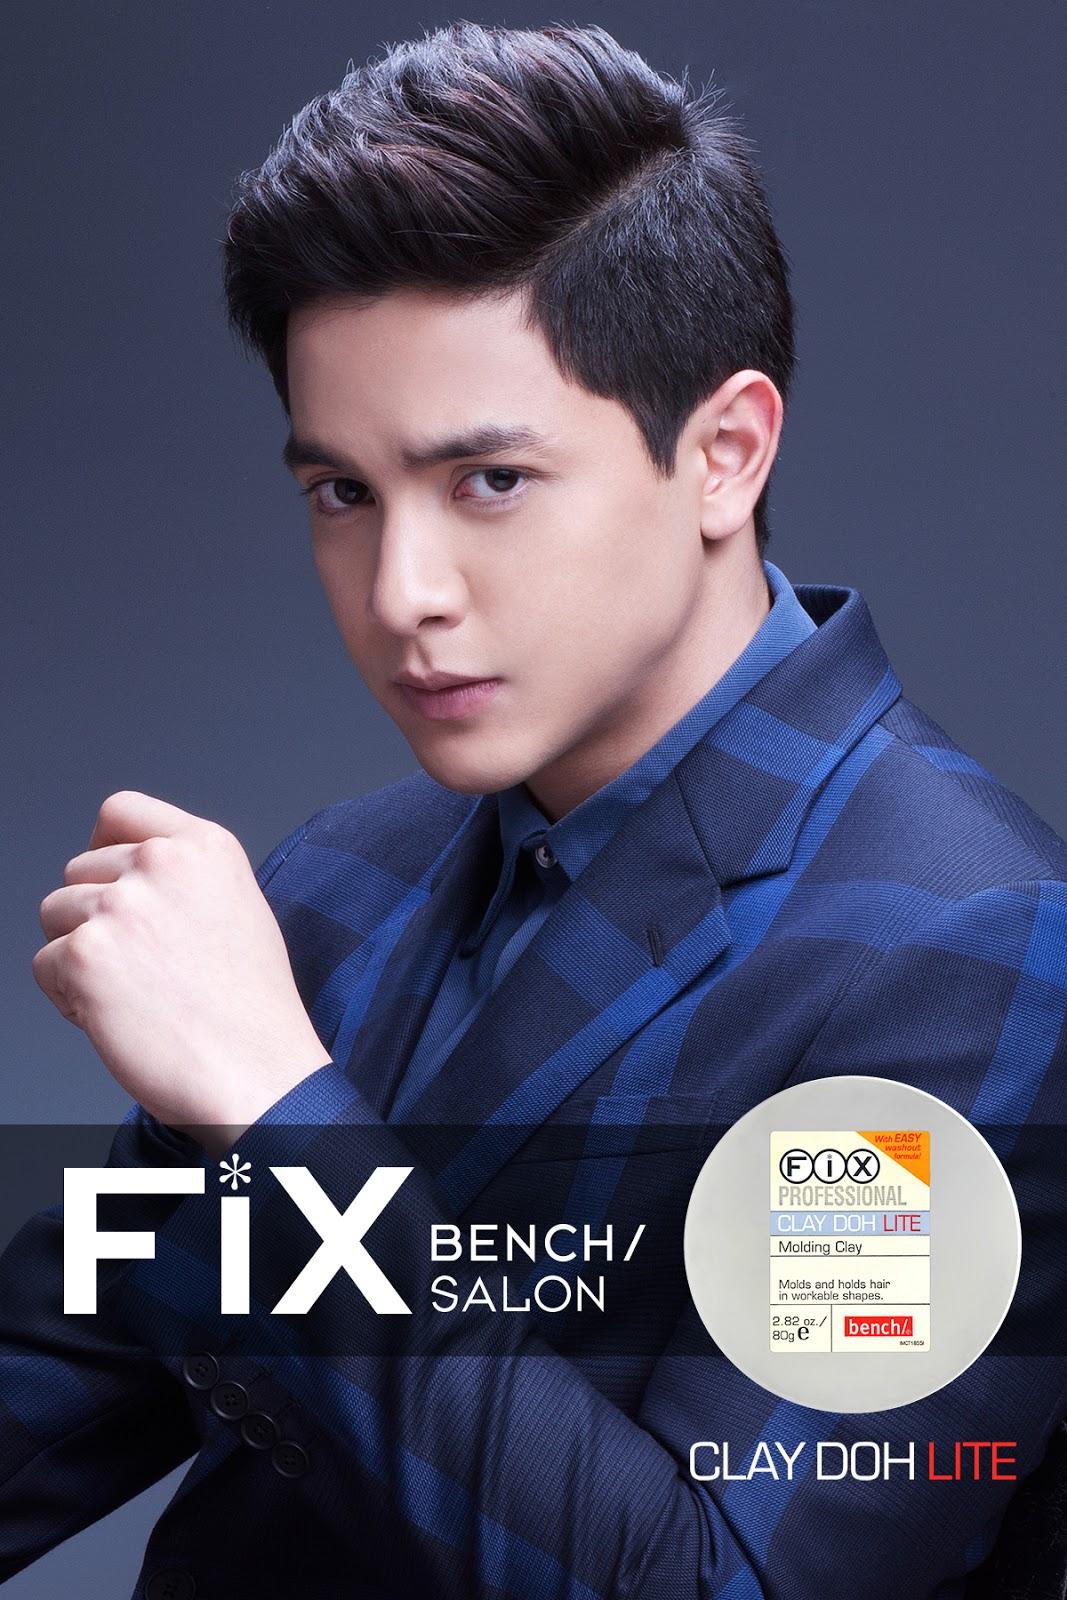 Chikkaness avenue maine for bench alden for bench fix for The alden